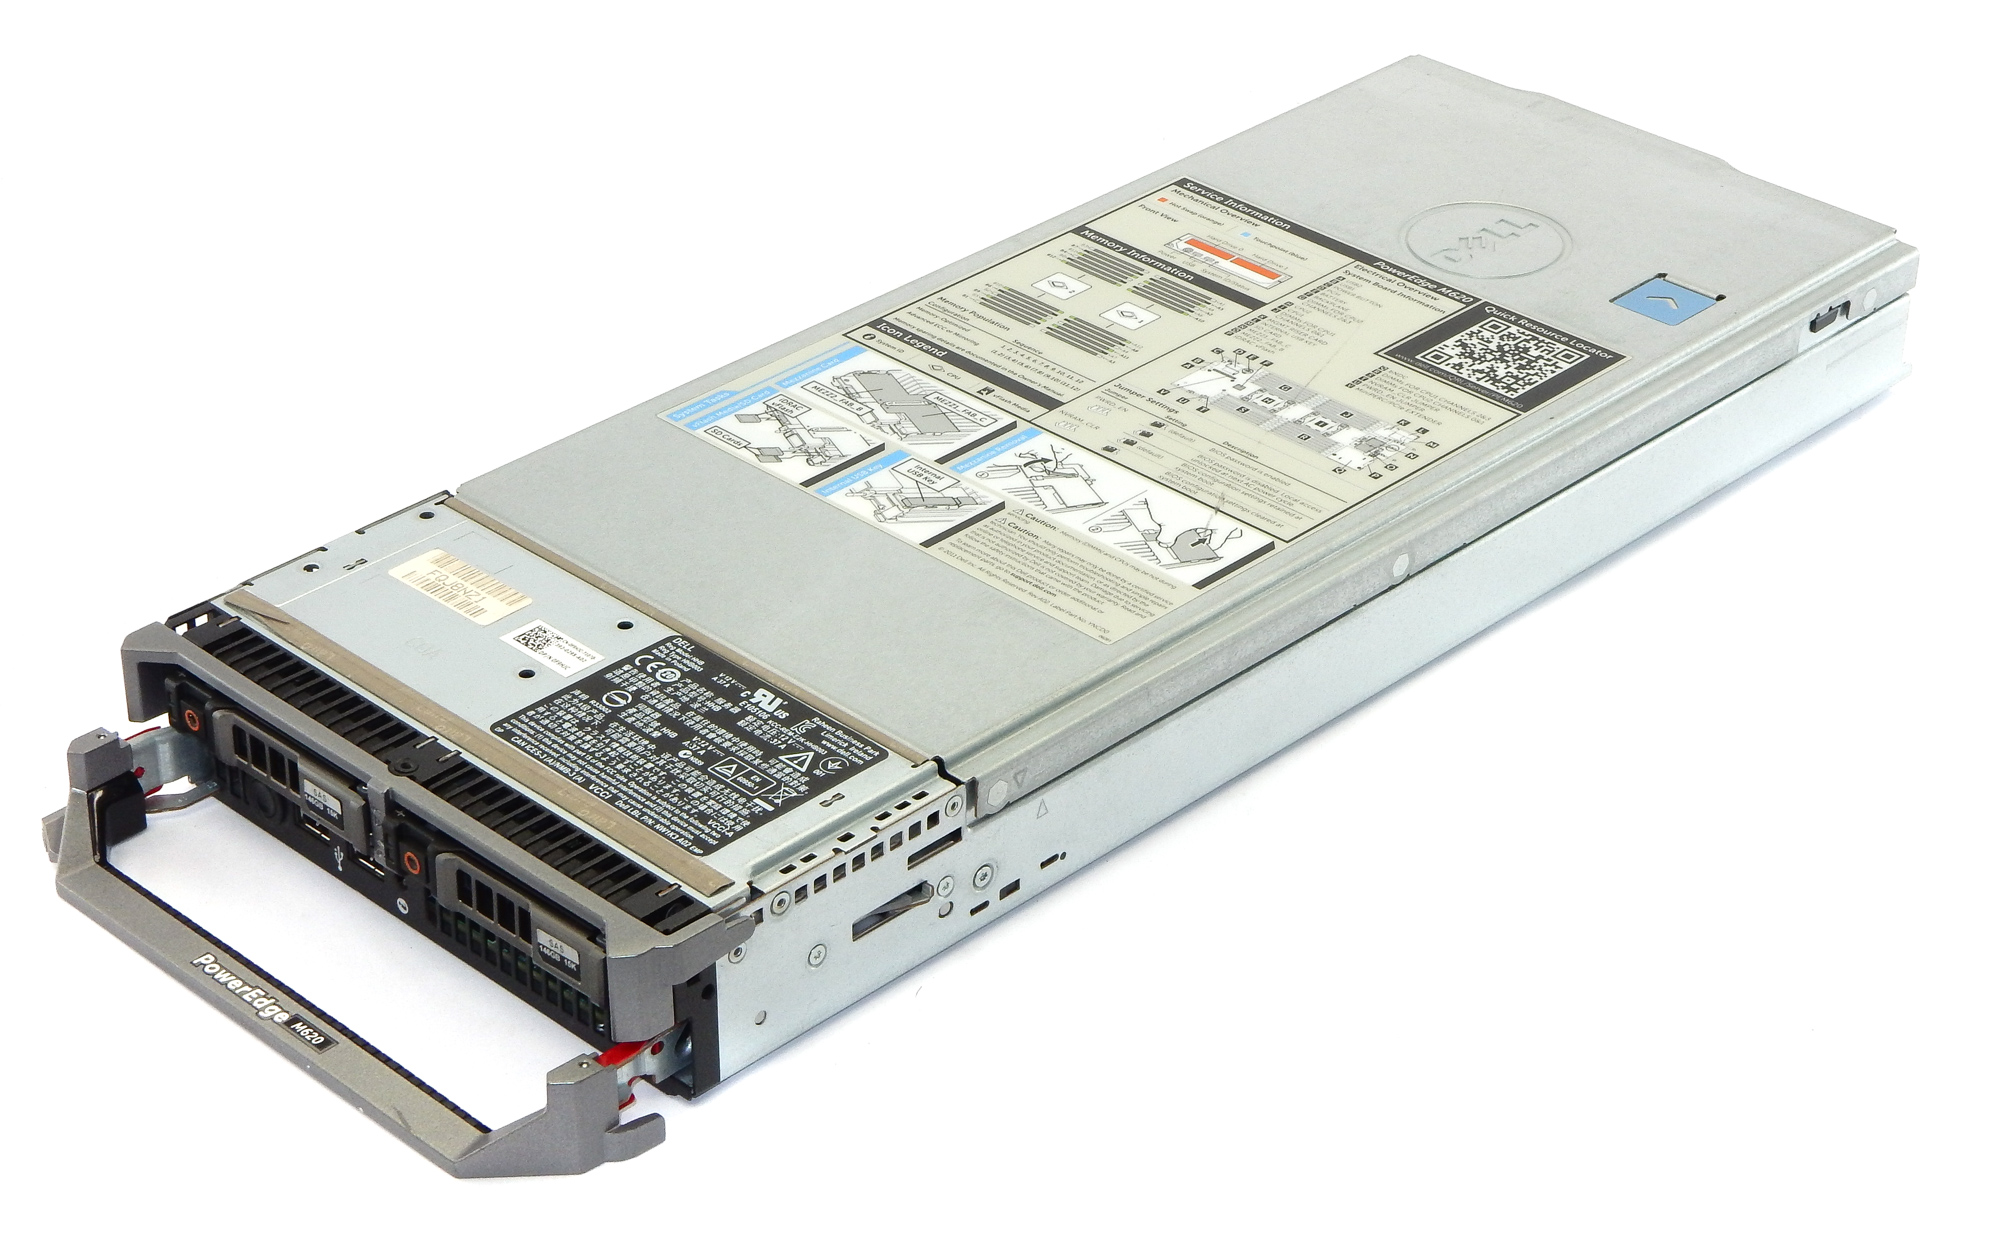 Dell F9HJC PowerEdge M620 Barebone Chasis w/ 69C8J / JVFVR / 55GHP /210Y6